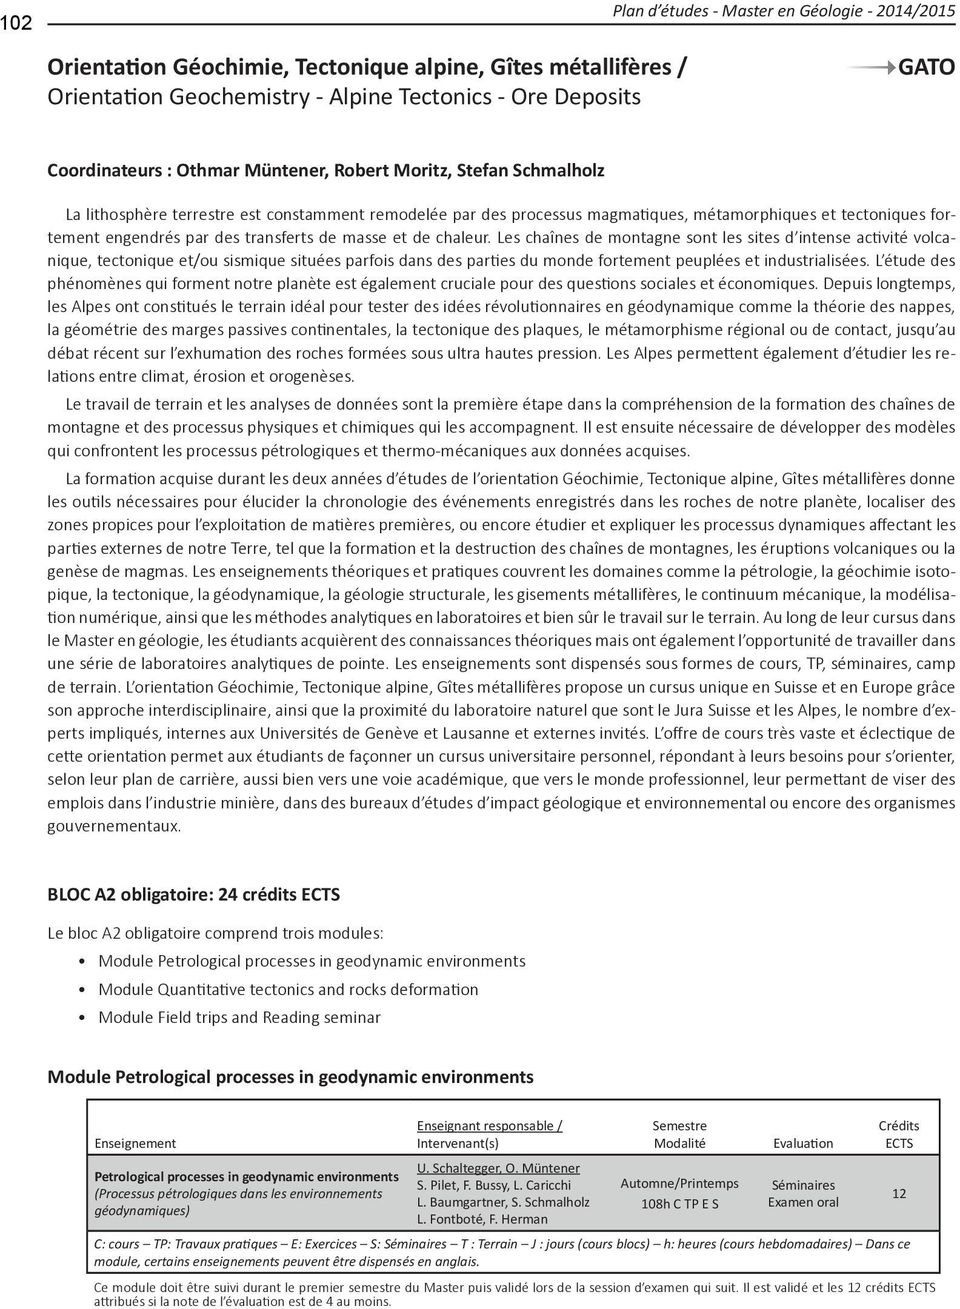 A2 obligatoire: 24 crédits Module Petrological processes in geodynamic environments Petrological processes in